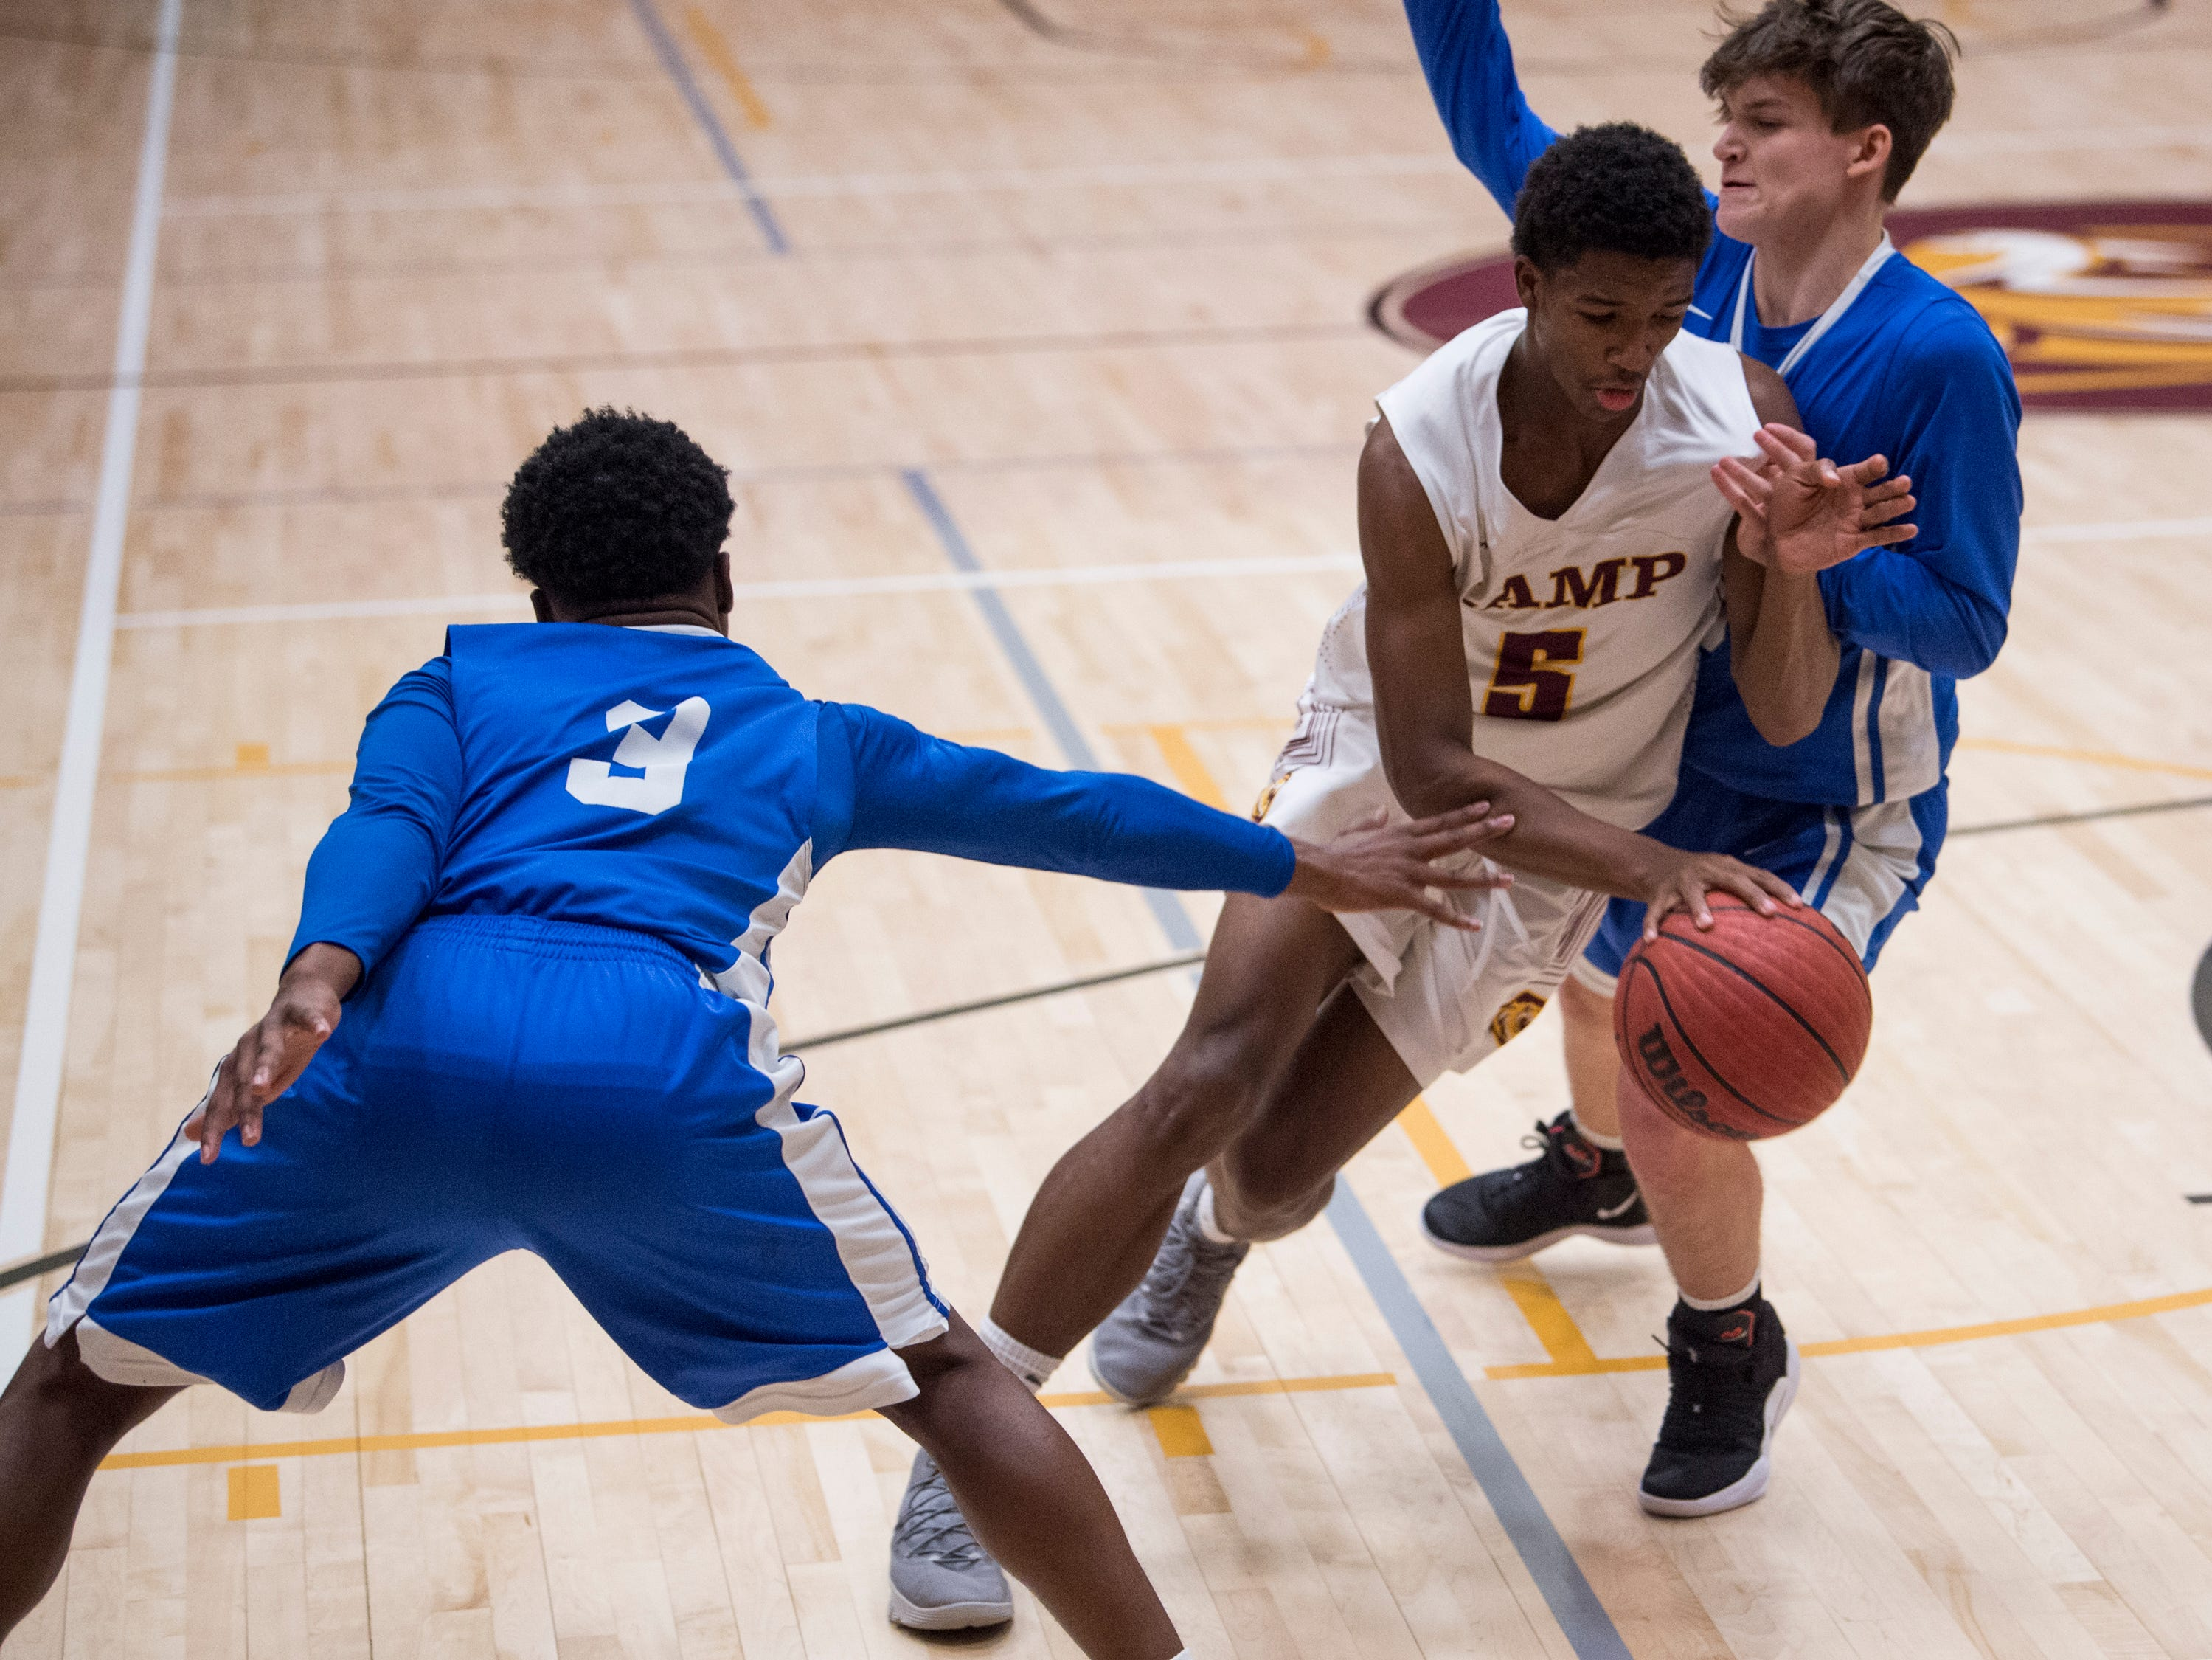 LAMP's Christopher Graham, middle, drives on Marbury's Chase Caver at LAMP high school in Montgomery, Ala., on Thursday, Jan. 10, 2019. LAMP defeated Marbury 85-72.